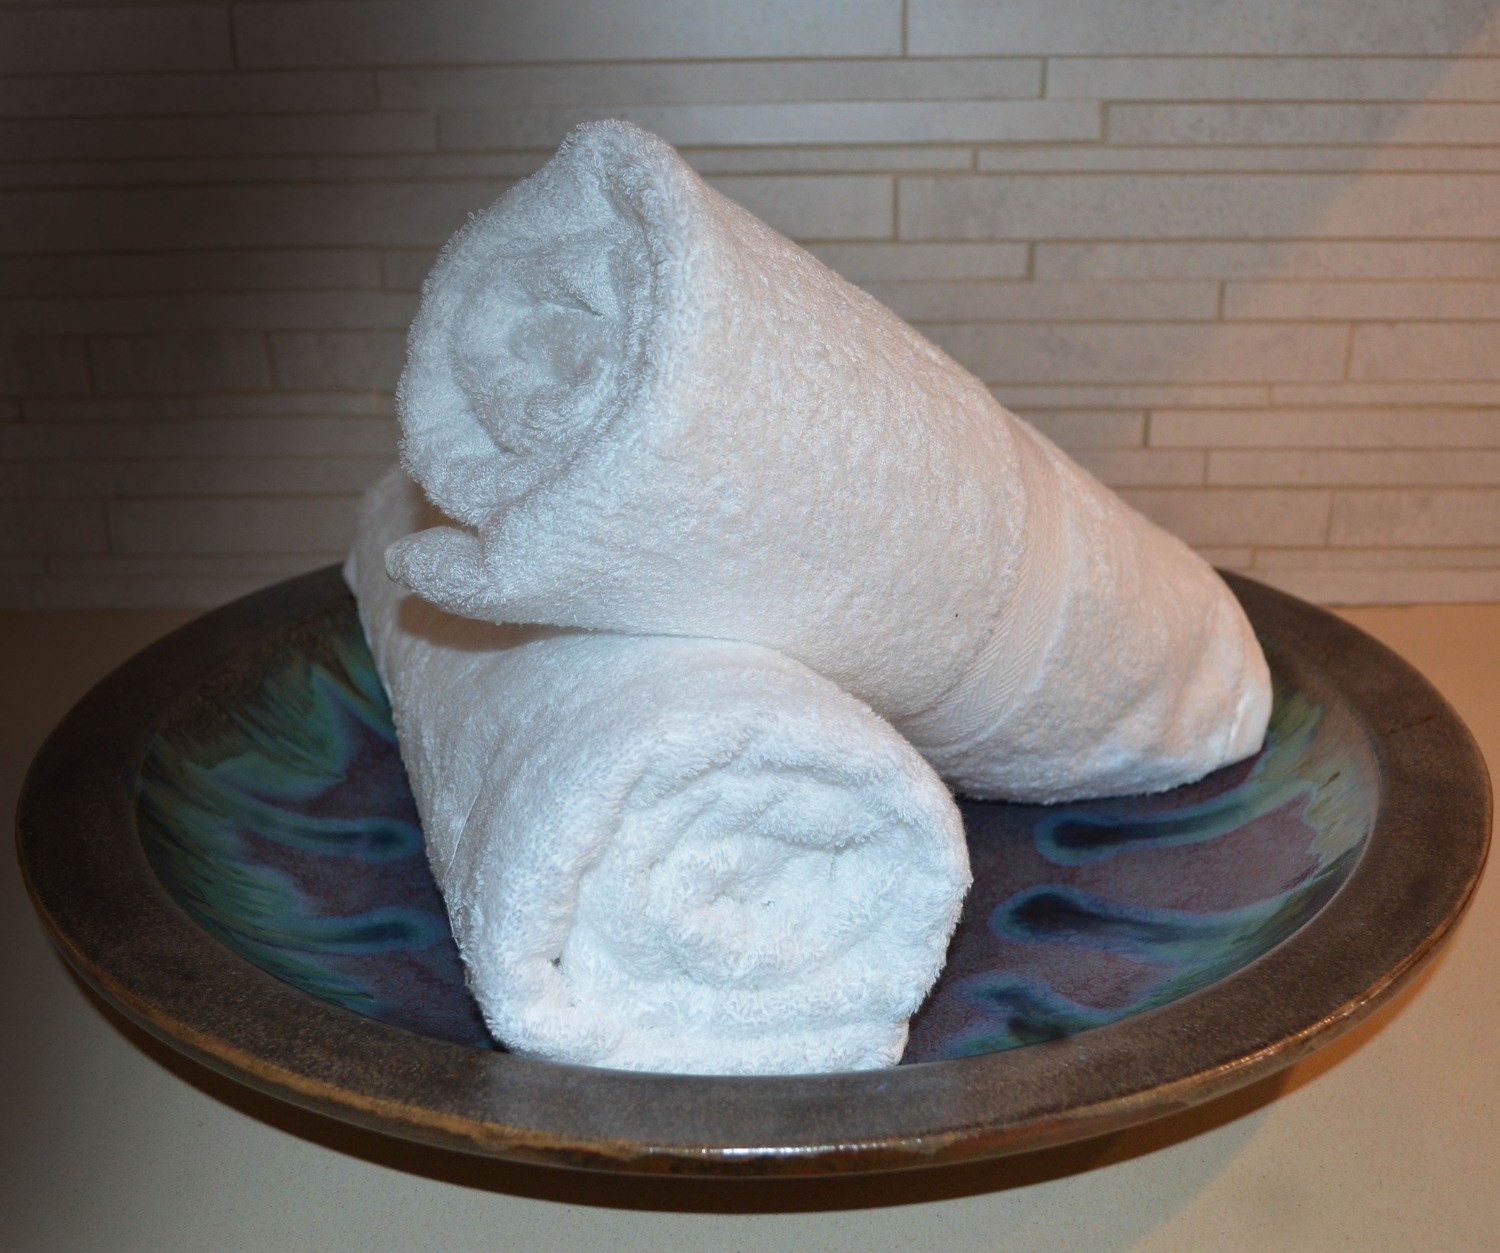 30x52 Paris Collection Bath Towels 15.0 lbs per dz weight.  80% modal, 20% cotton Imported.